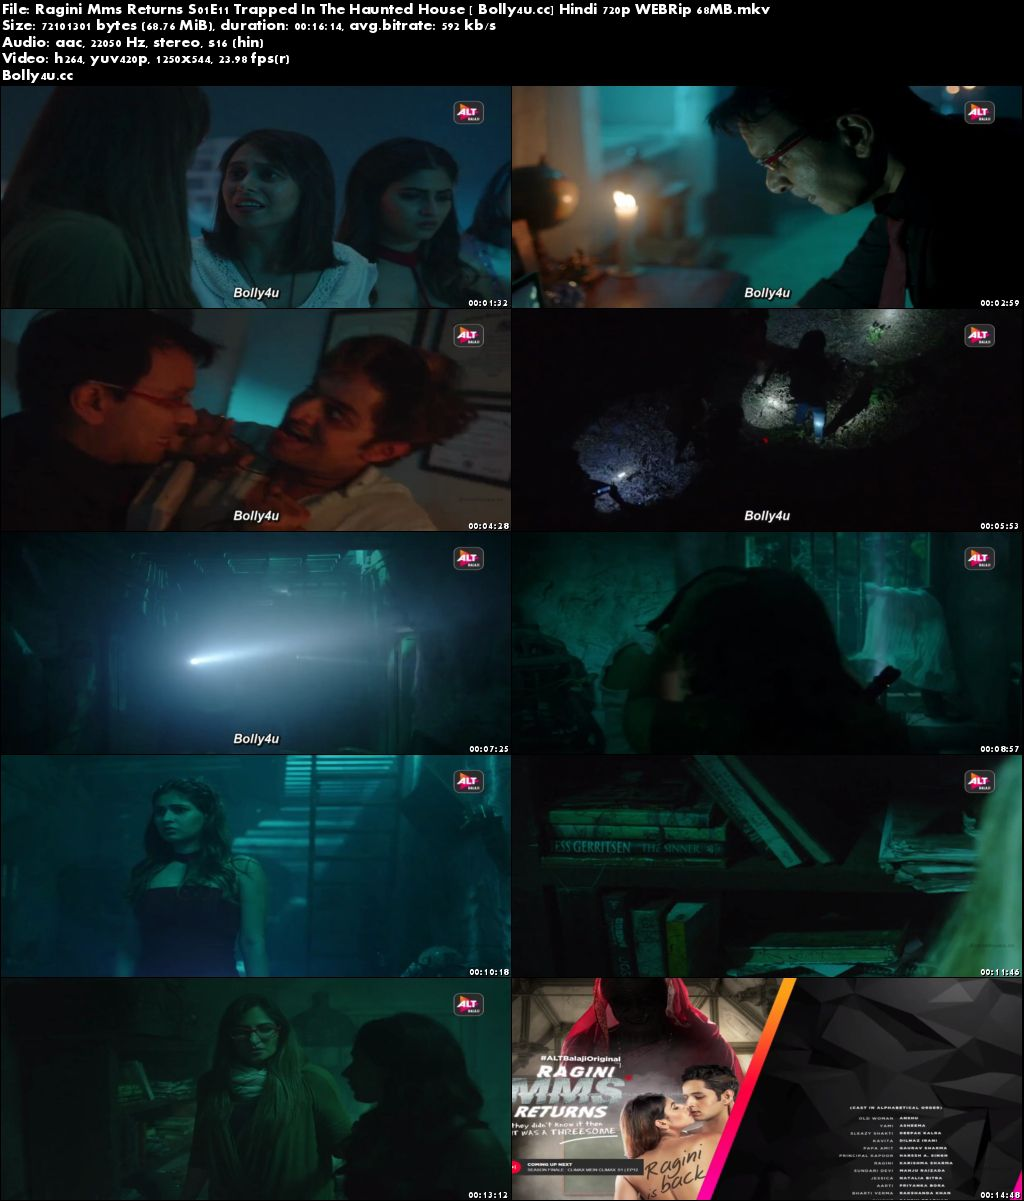 Ragini MMS Returns S01E11 Trapped In The Haunted House WEBRip 65MB Hindi 720p Download